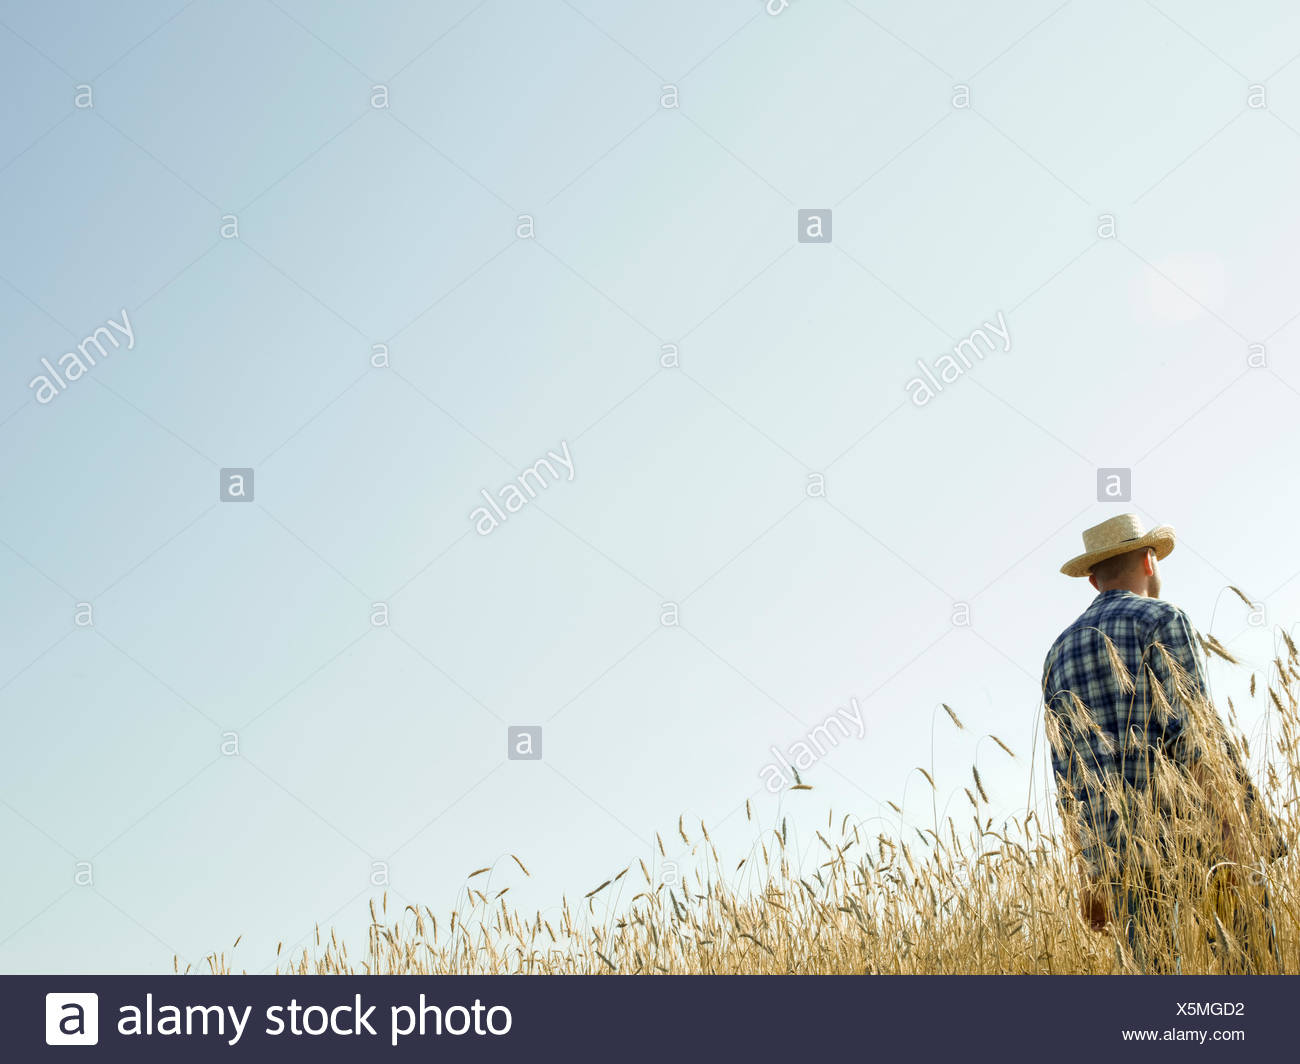 A man standing in a field of ripening wheat crop. - Stock Image